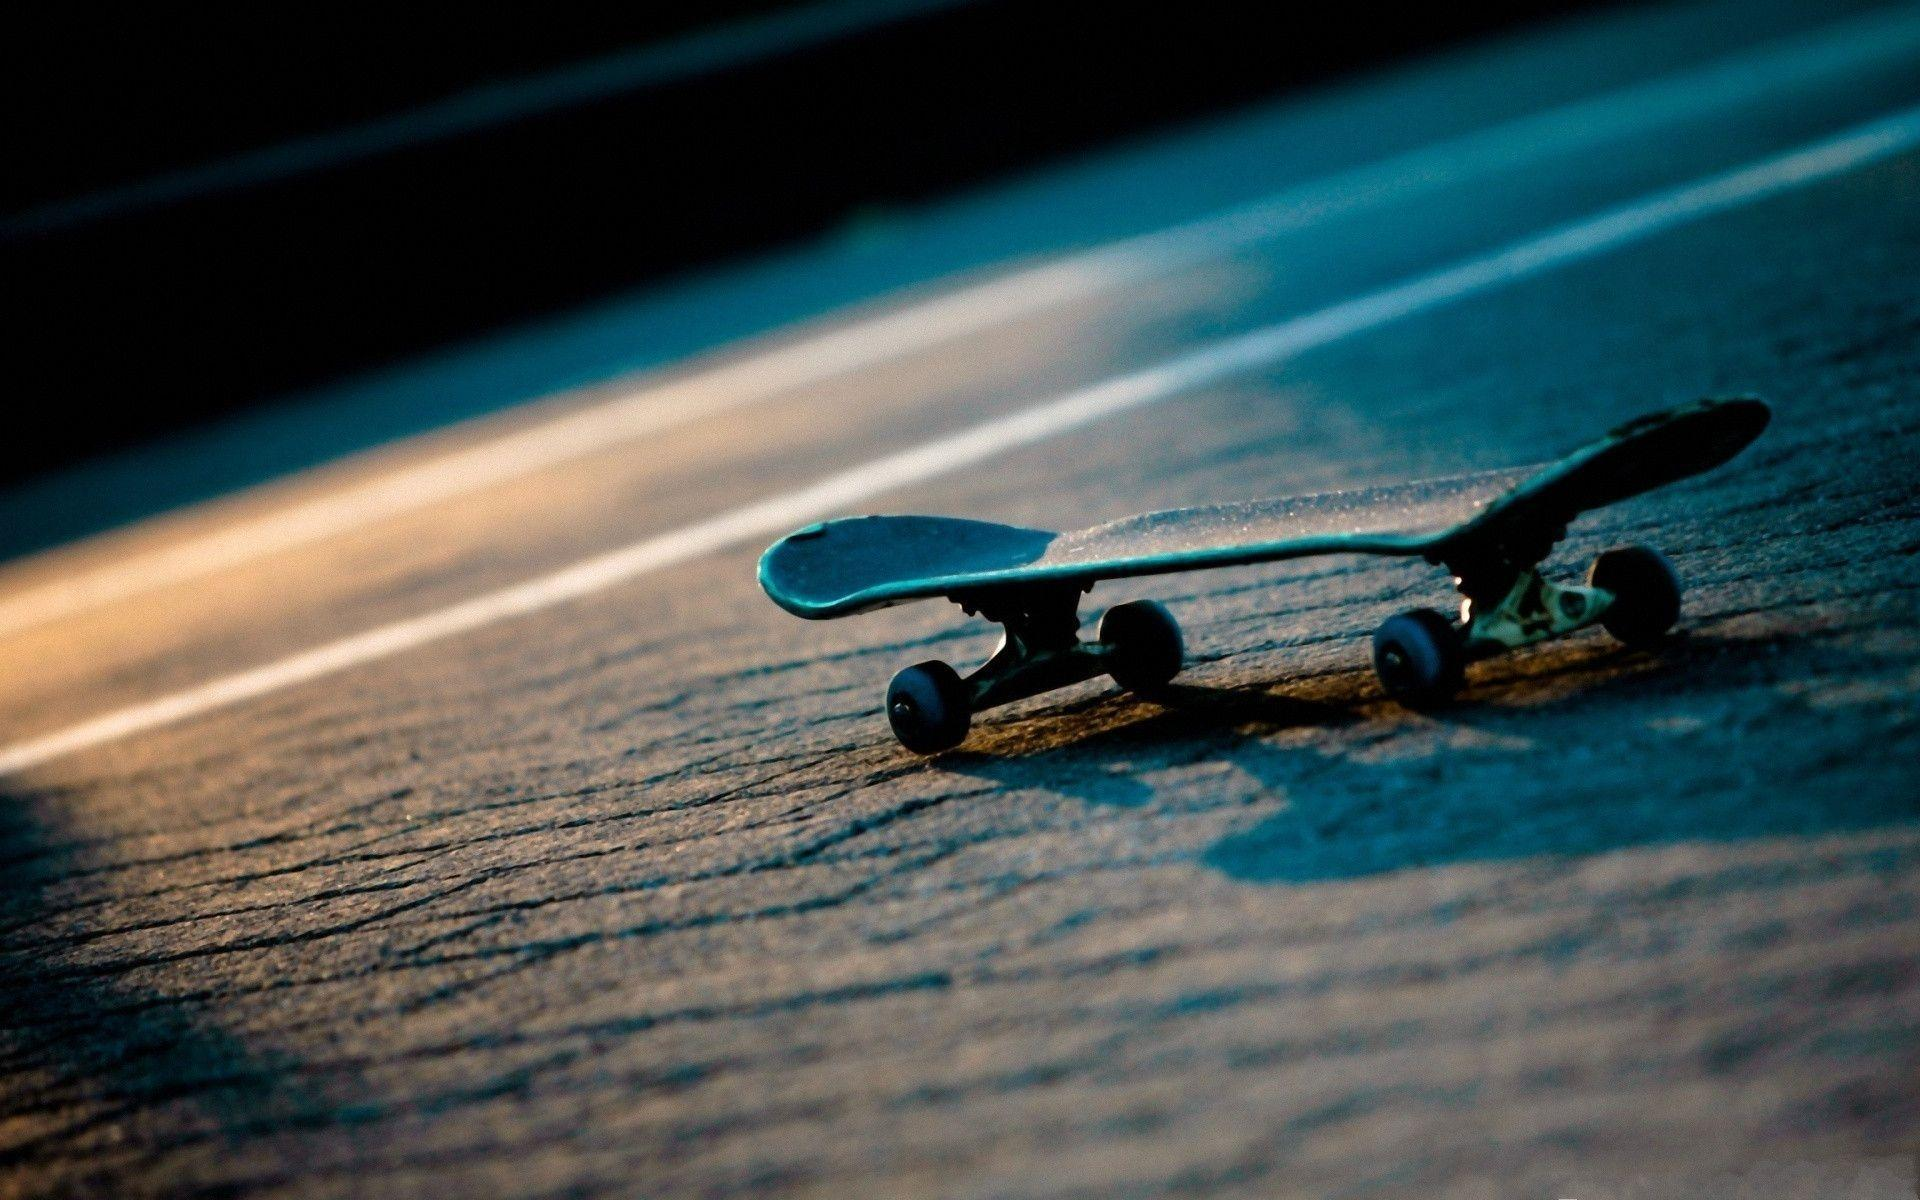 vans skateboard wallpaper 3d - photo #30